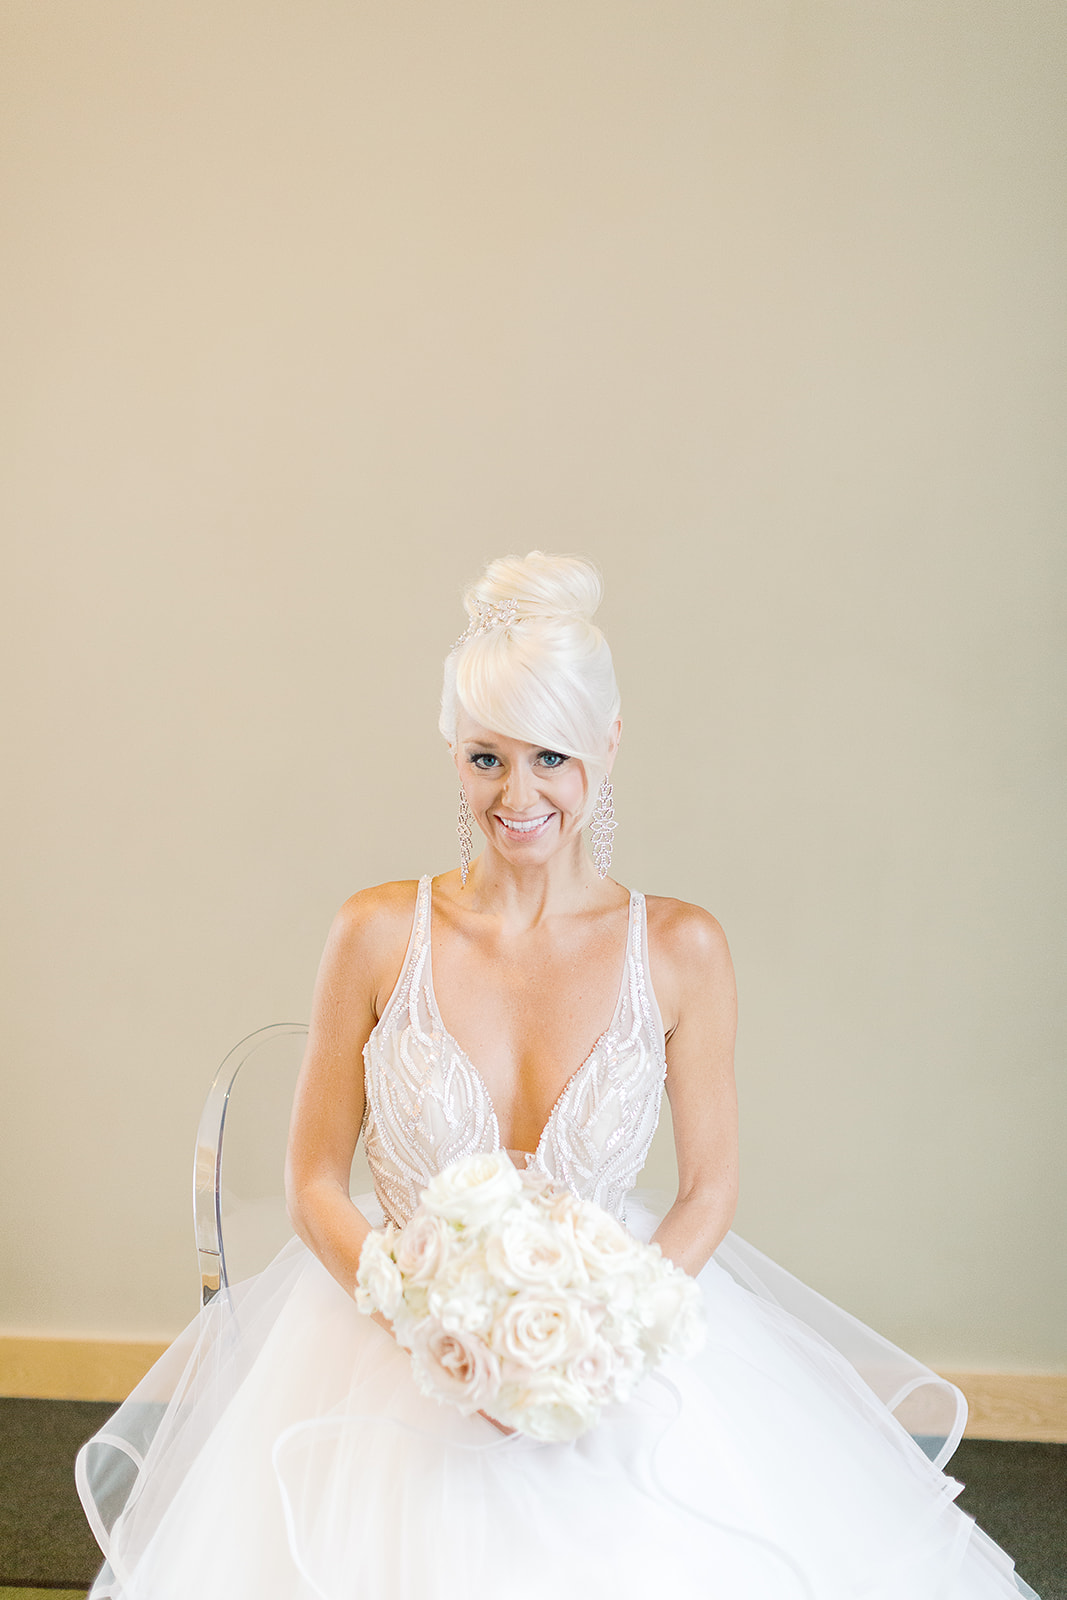 Bride in a wedding gown holding an all white rose bridal bouquet on the day of her formal white ballroom wedding in Seattle